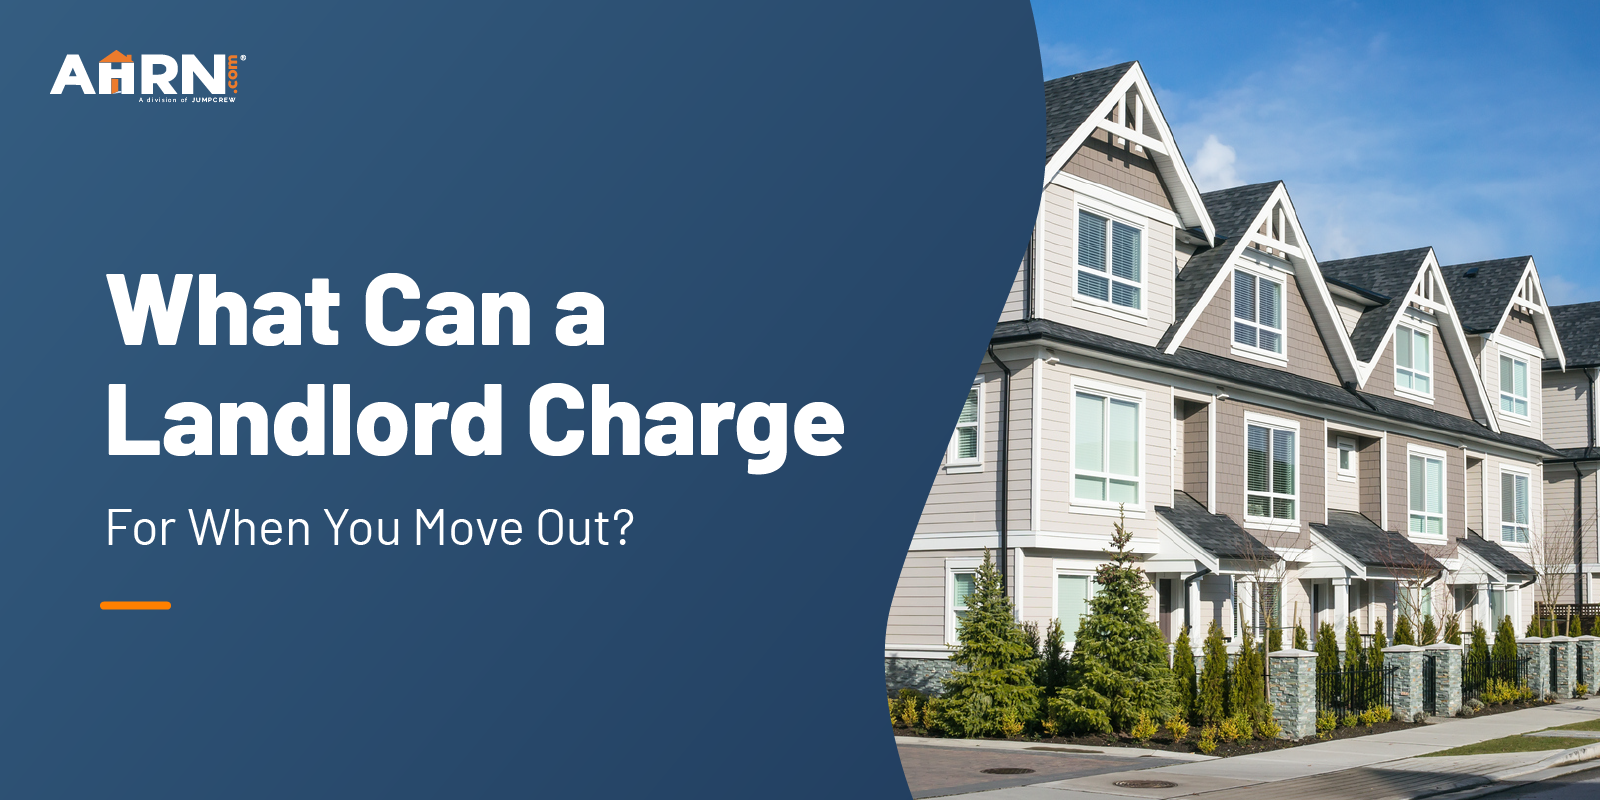 What Can a Landlord Charge For When You Move Out?